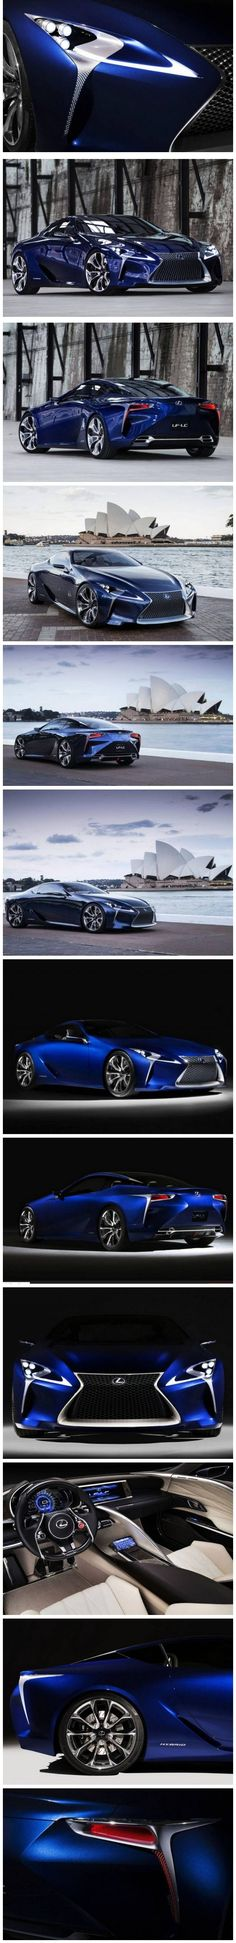 Lexus LF-LC Concept  http://vykonkom.com/category/luxury-cars/